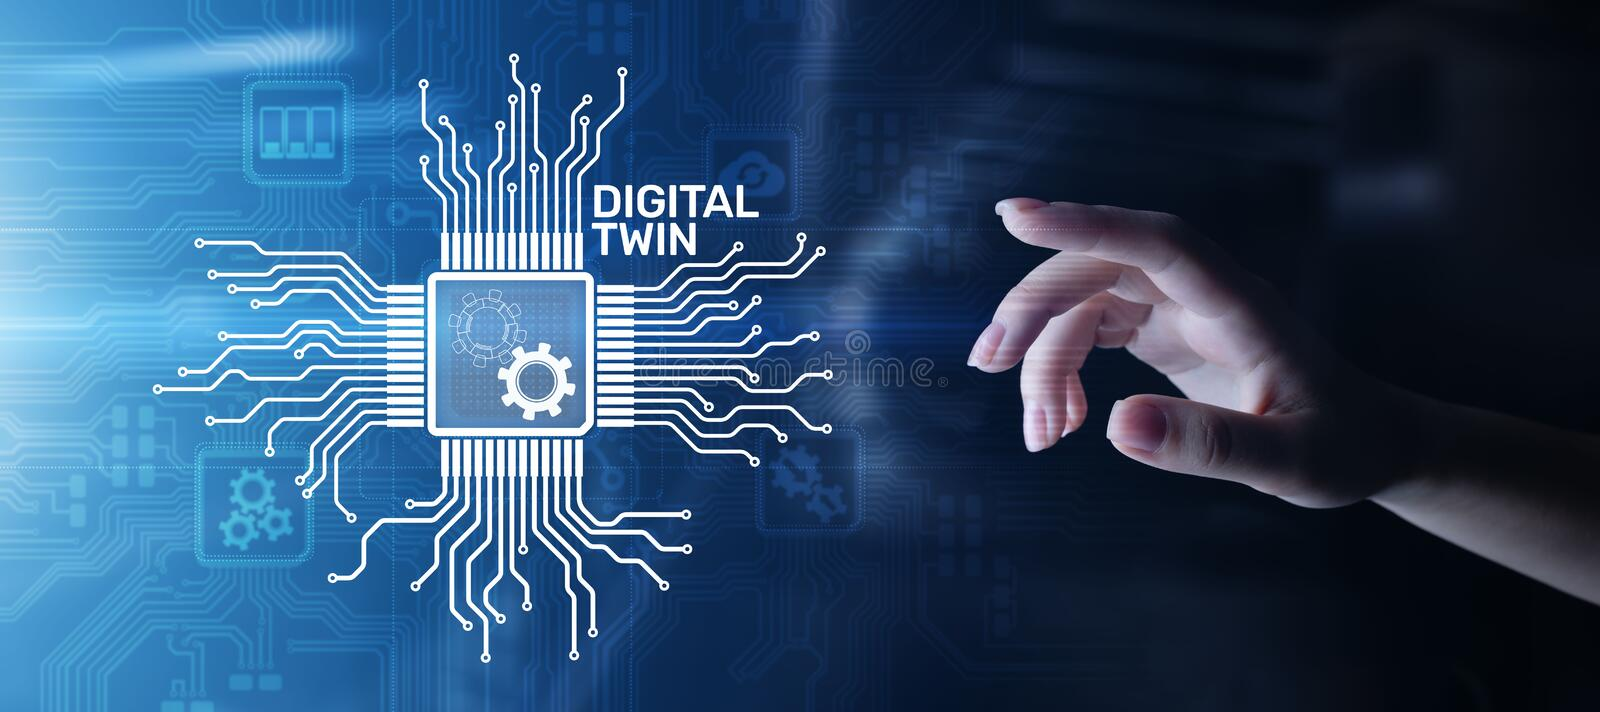 Digital twin business and industrial process modelling. innovation and optimisation. vector illustration